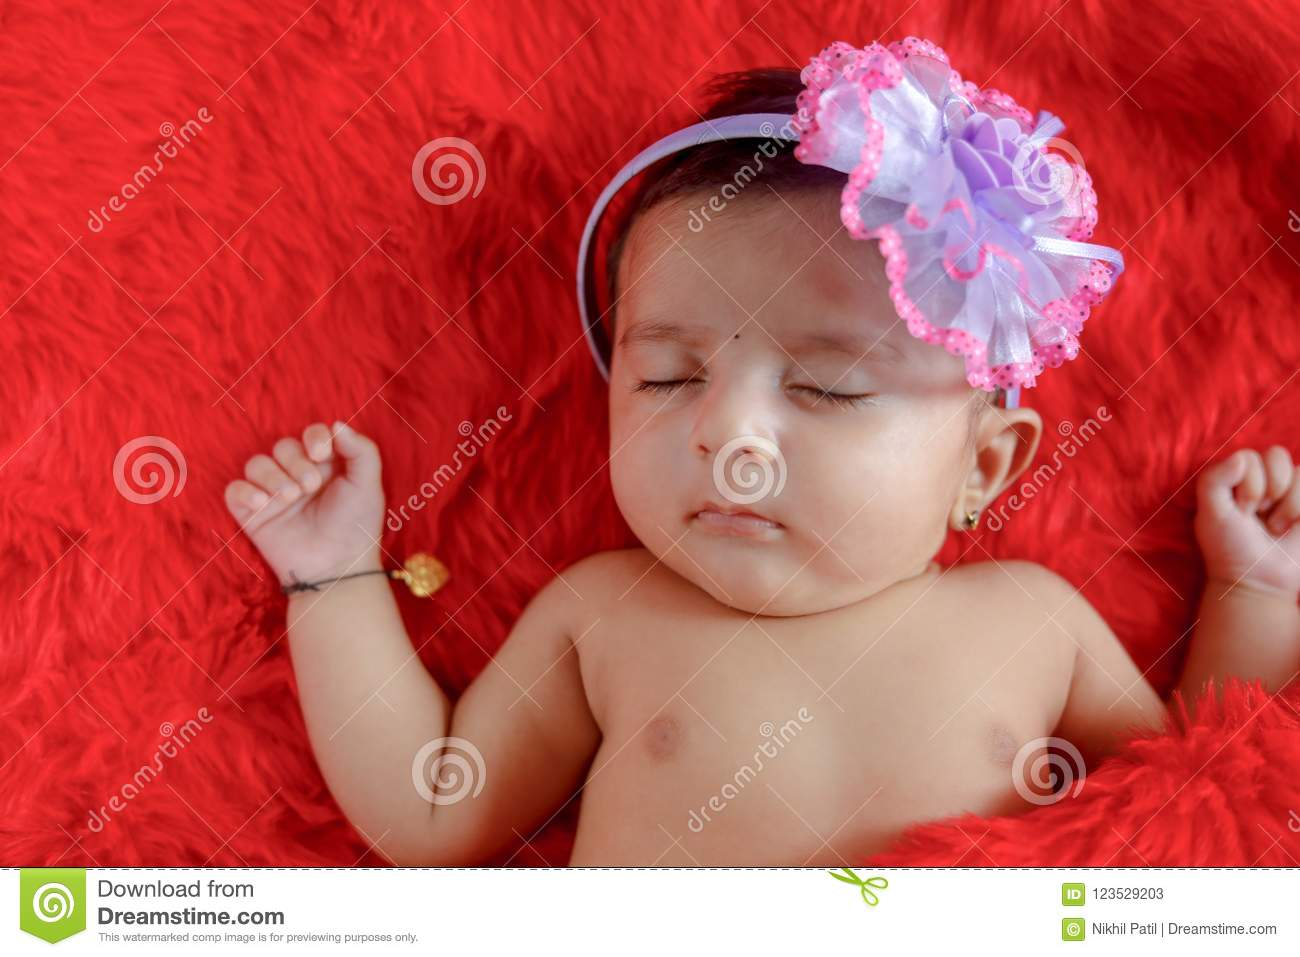 cute indian baby girl sleeping on bed stock image - image of hair